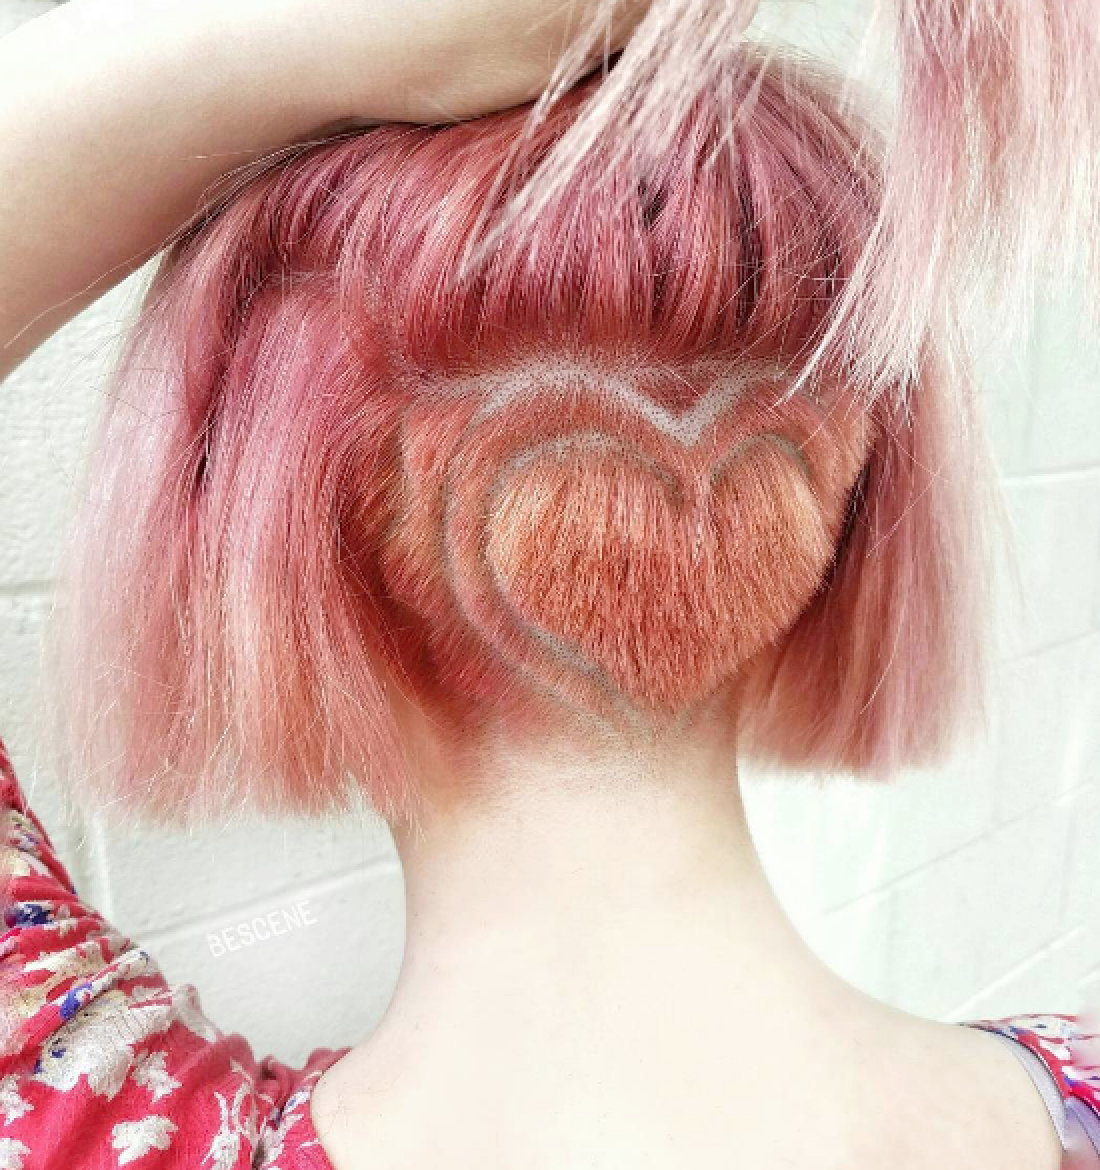 @bescene's heart-shaped nape design is everything.